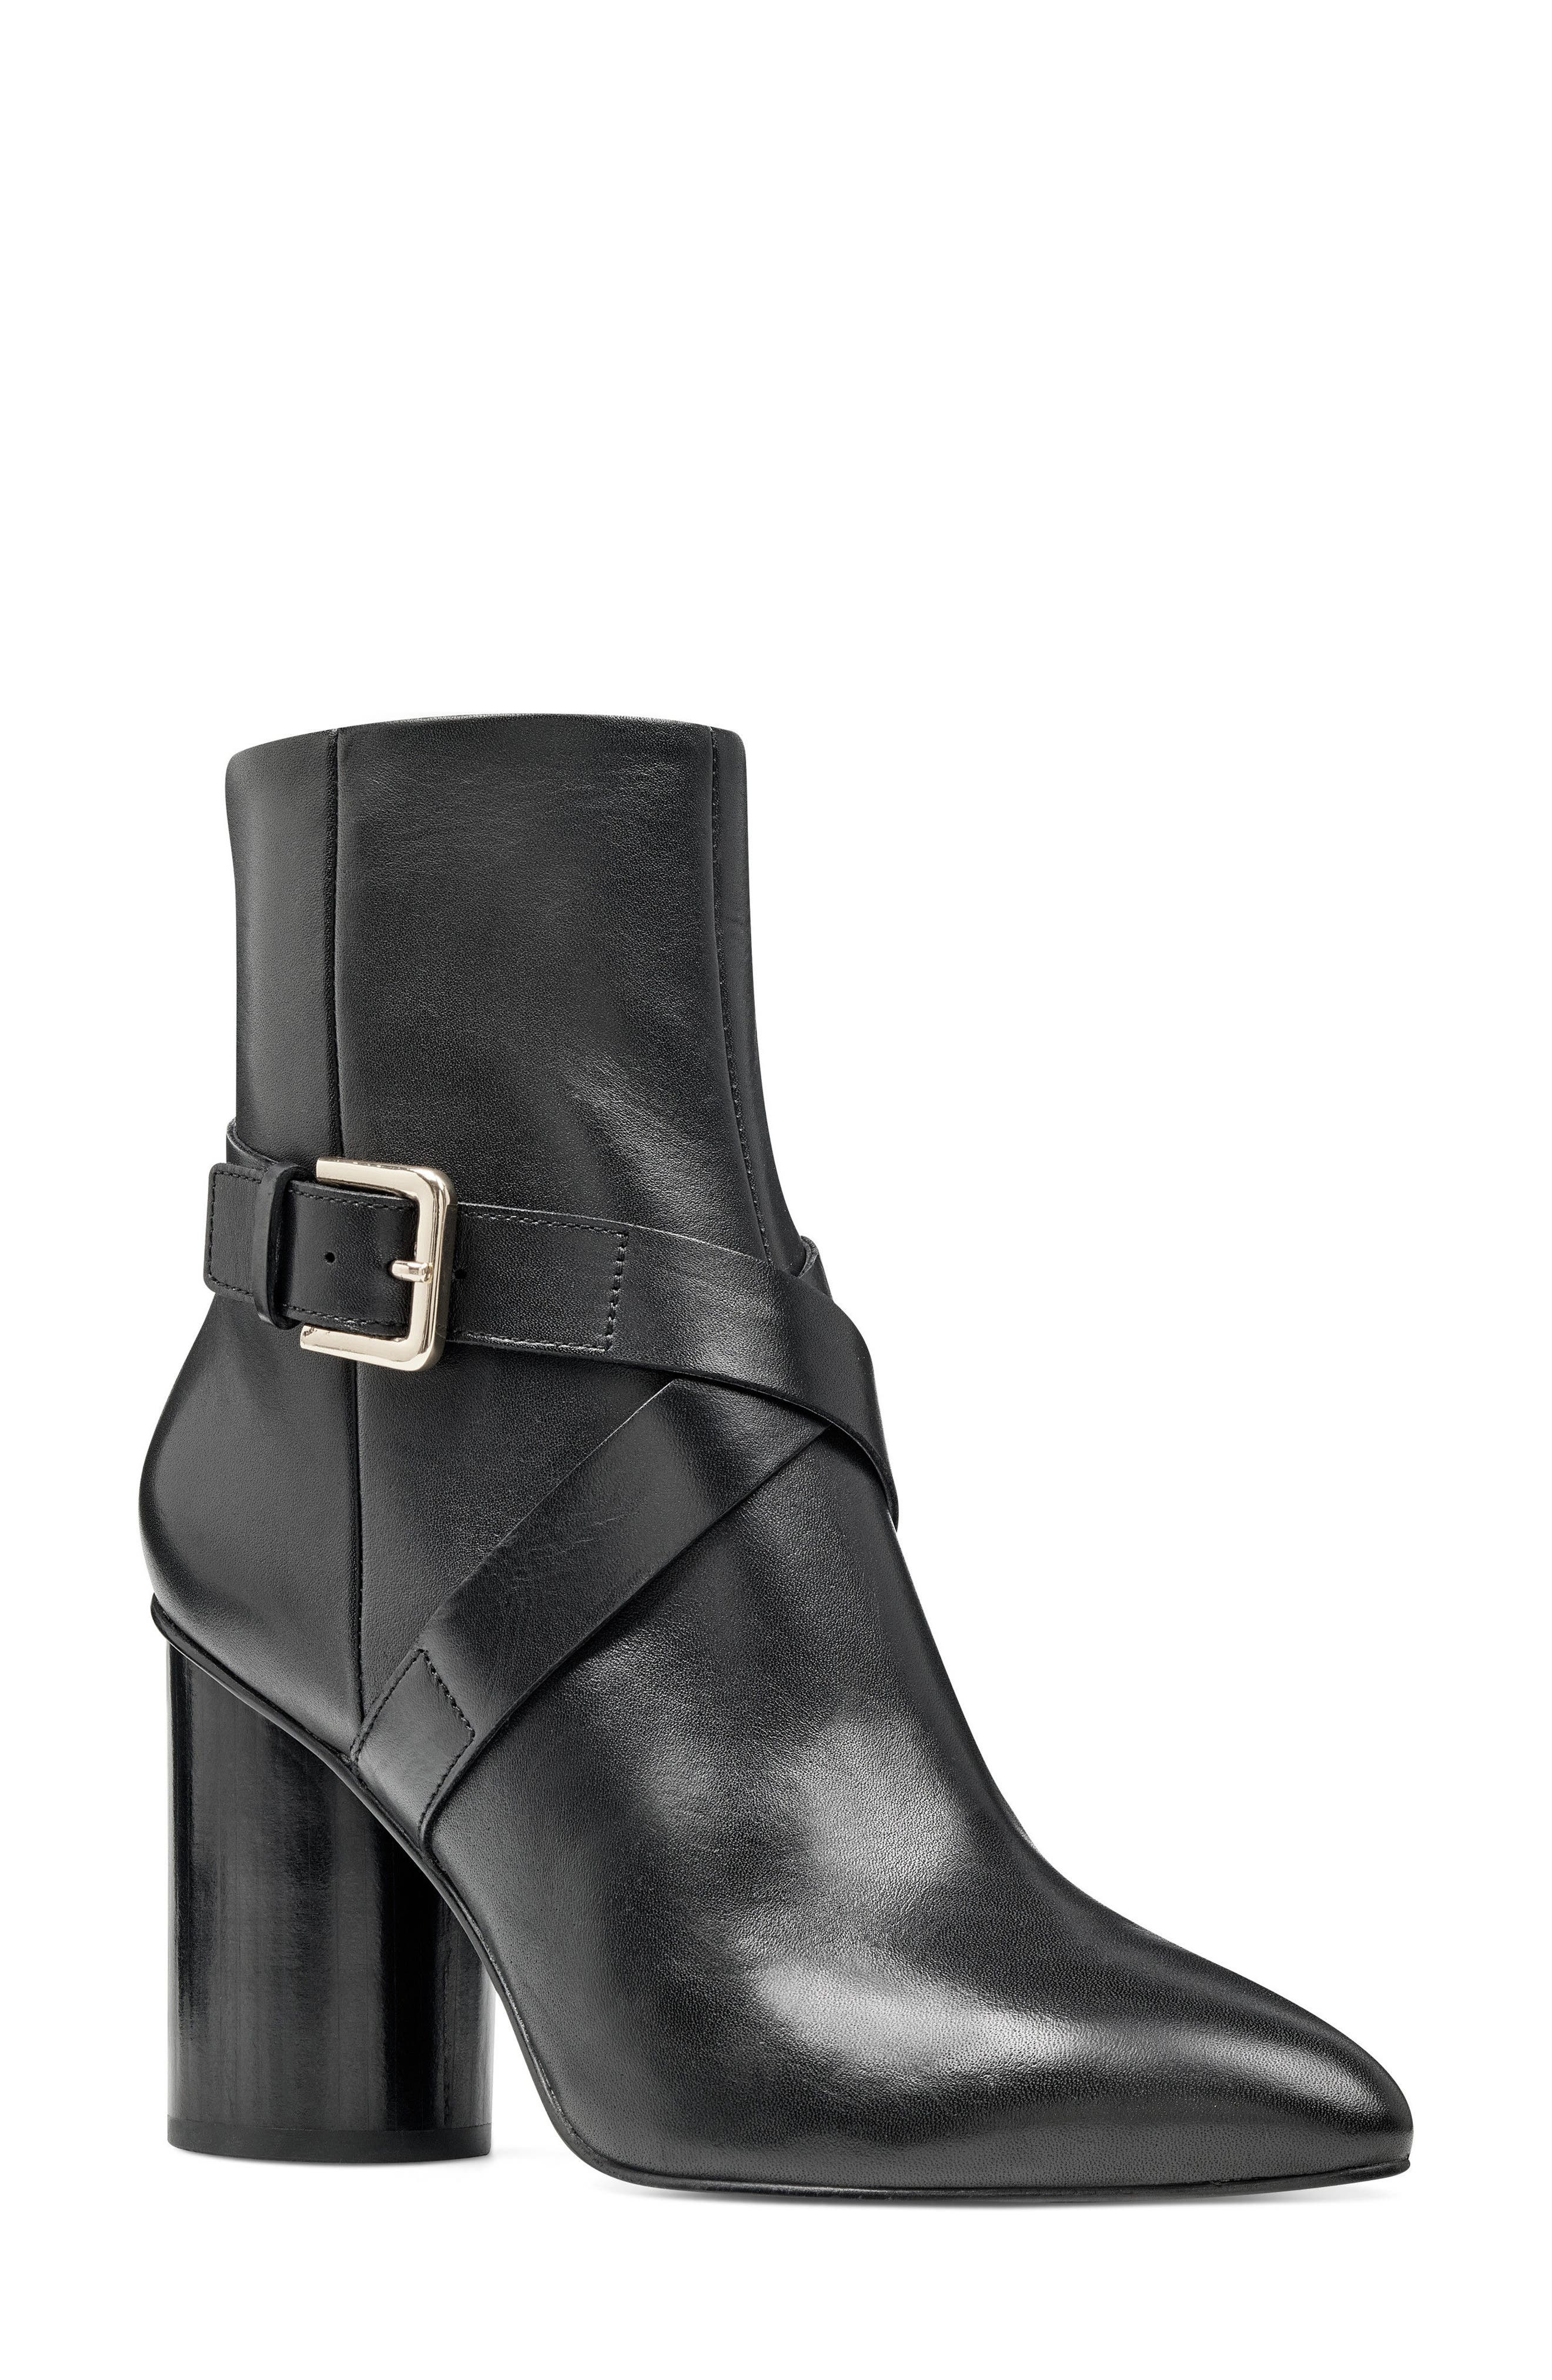 Cavanagh Pointy Toe Bootie,                         Main,                         color, Black Leather